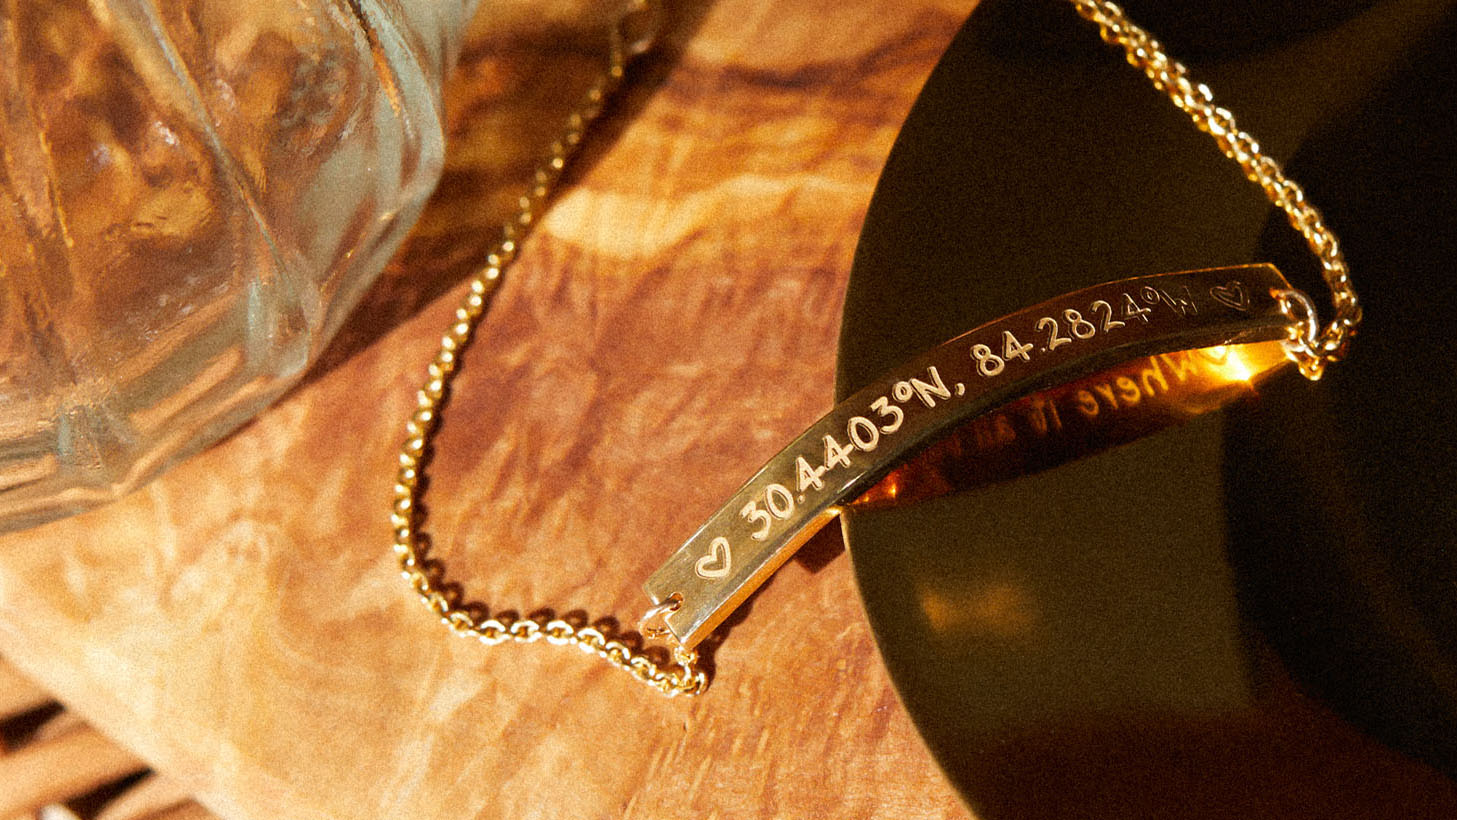 Featured image for Coordinates Jewelry: How to Find Your GPS Coordinates